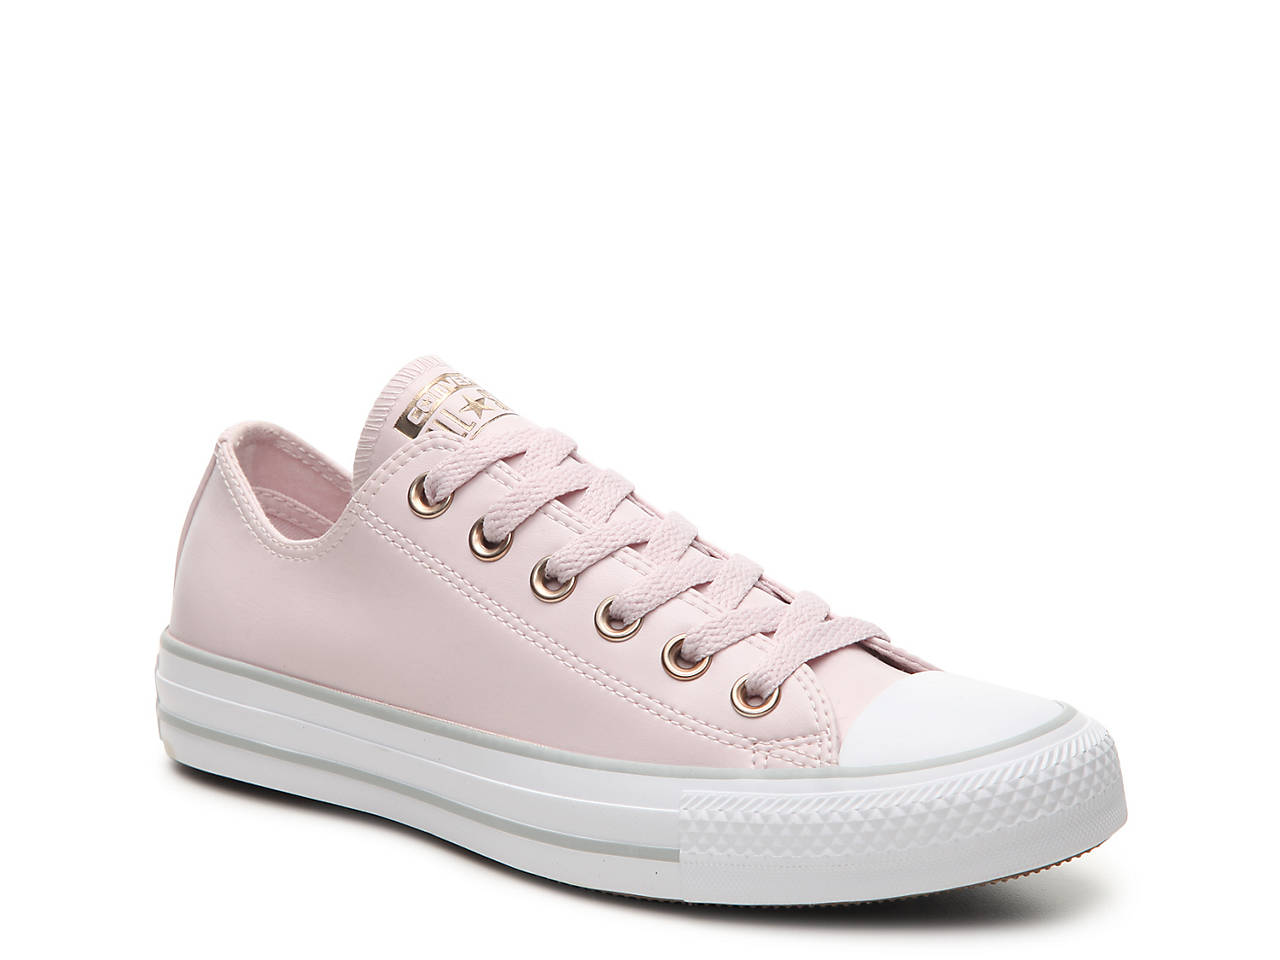 757e3353e5c2 Converse Chuck Taylor All Star Ox Sneaker - Women s Women s Shoes